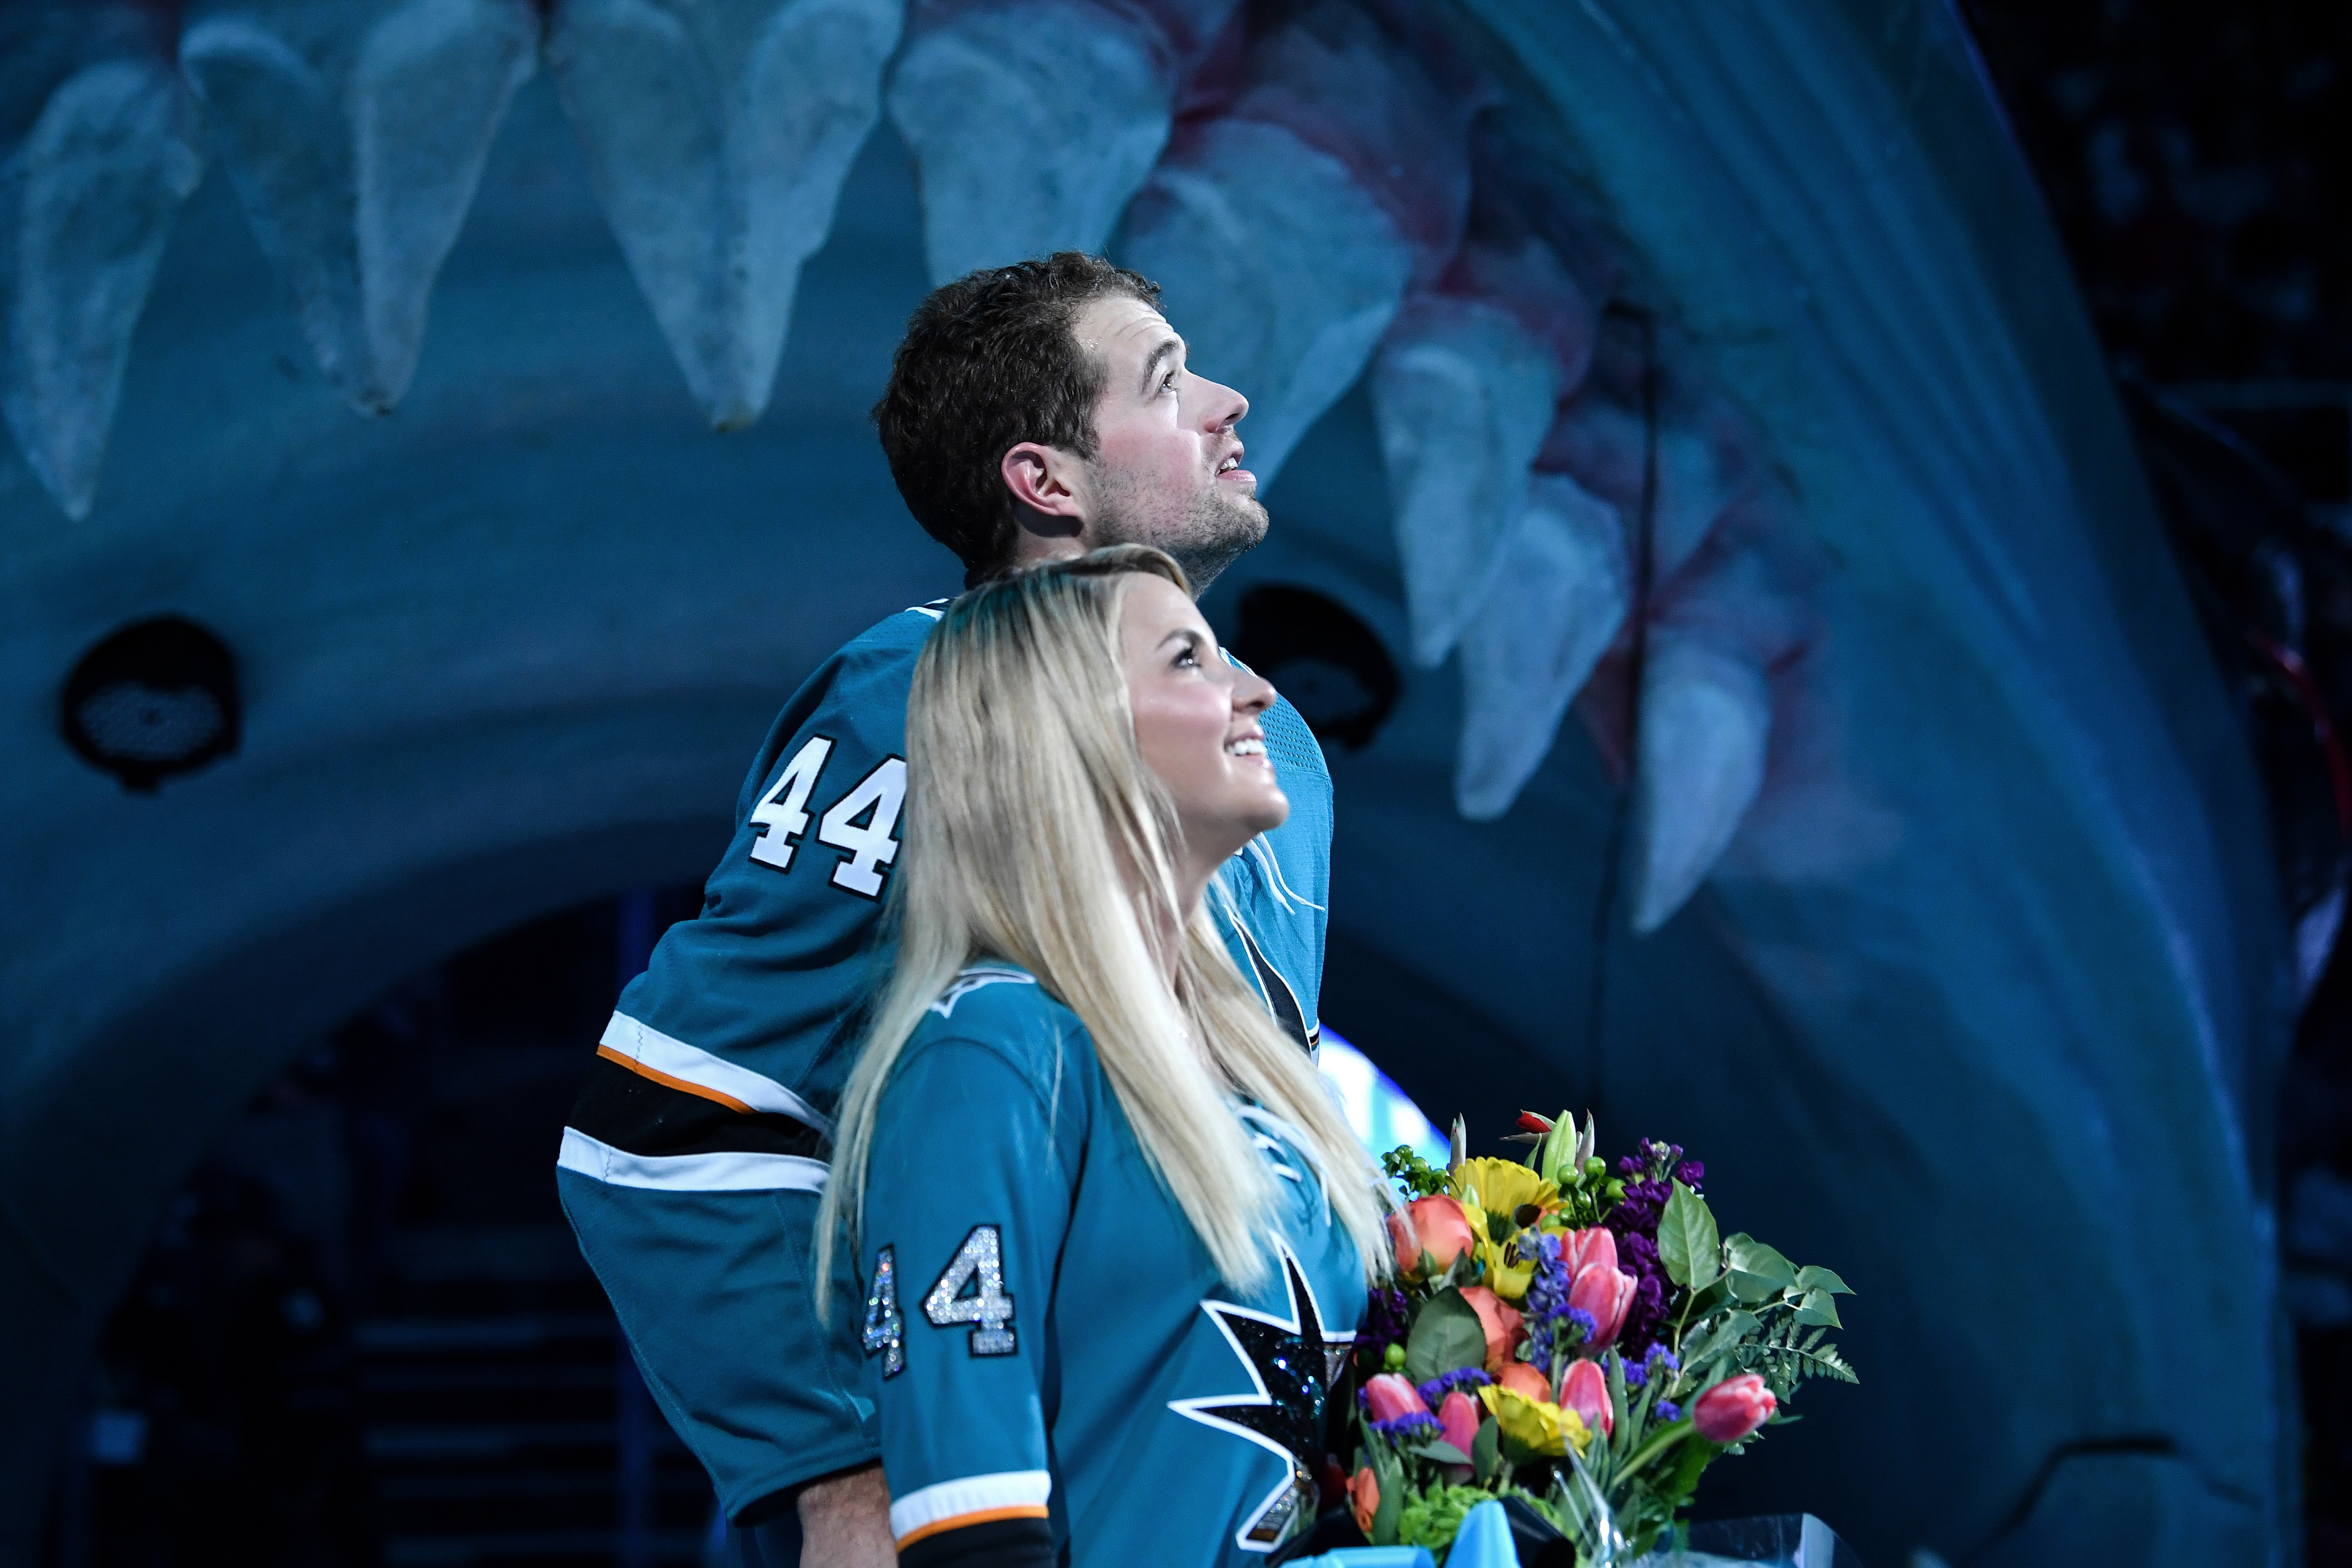 Marc-Edouard Vlasic #44 of the San Jose Sharks and his wife Martine Vlasic look up at the scoreboard while being honored for playing in 1,000 NHL games before the game against the Tampa Bay Lightning at SAP Center on February 1, 2020 in San Jose, California.